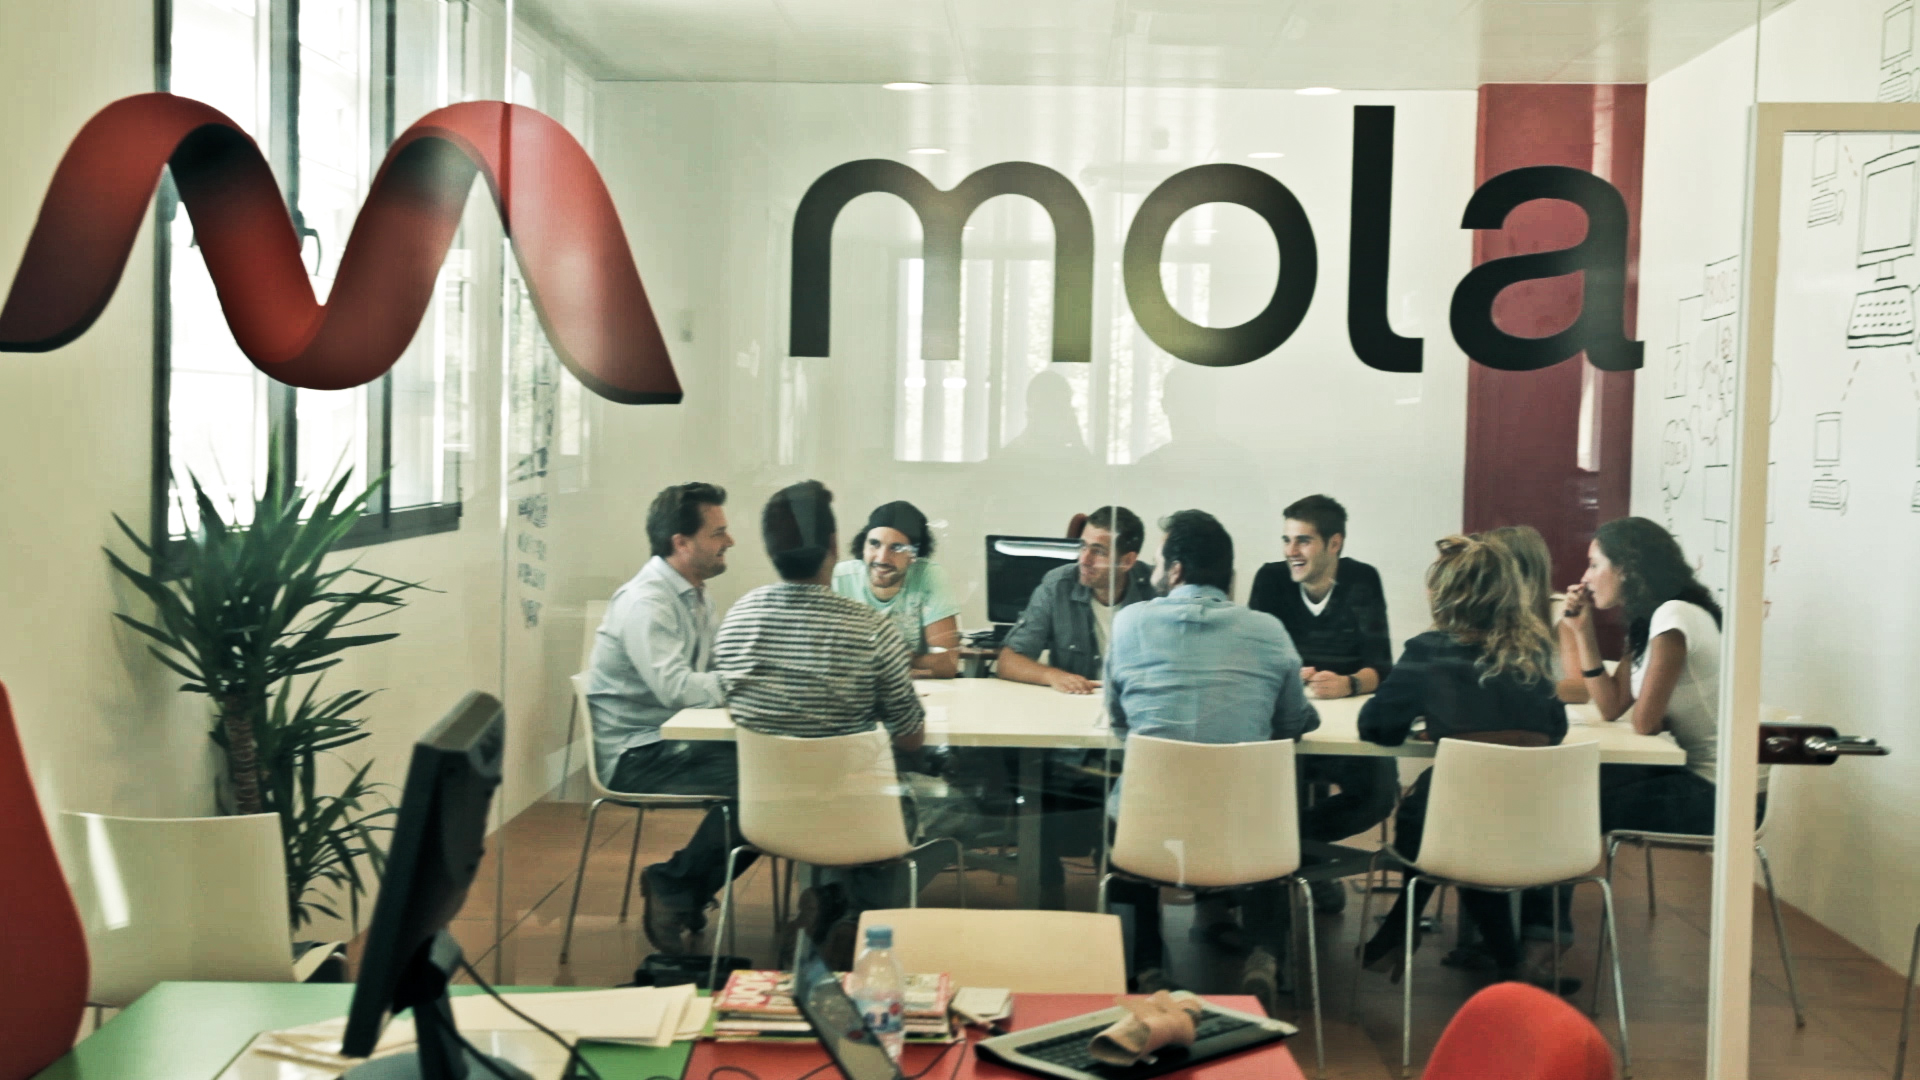 Emtrics and five other startups receive a combined $252k from Spanish accelerator Mola